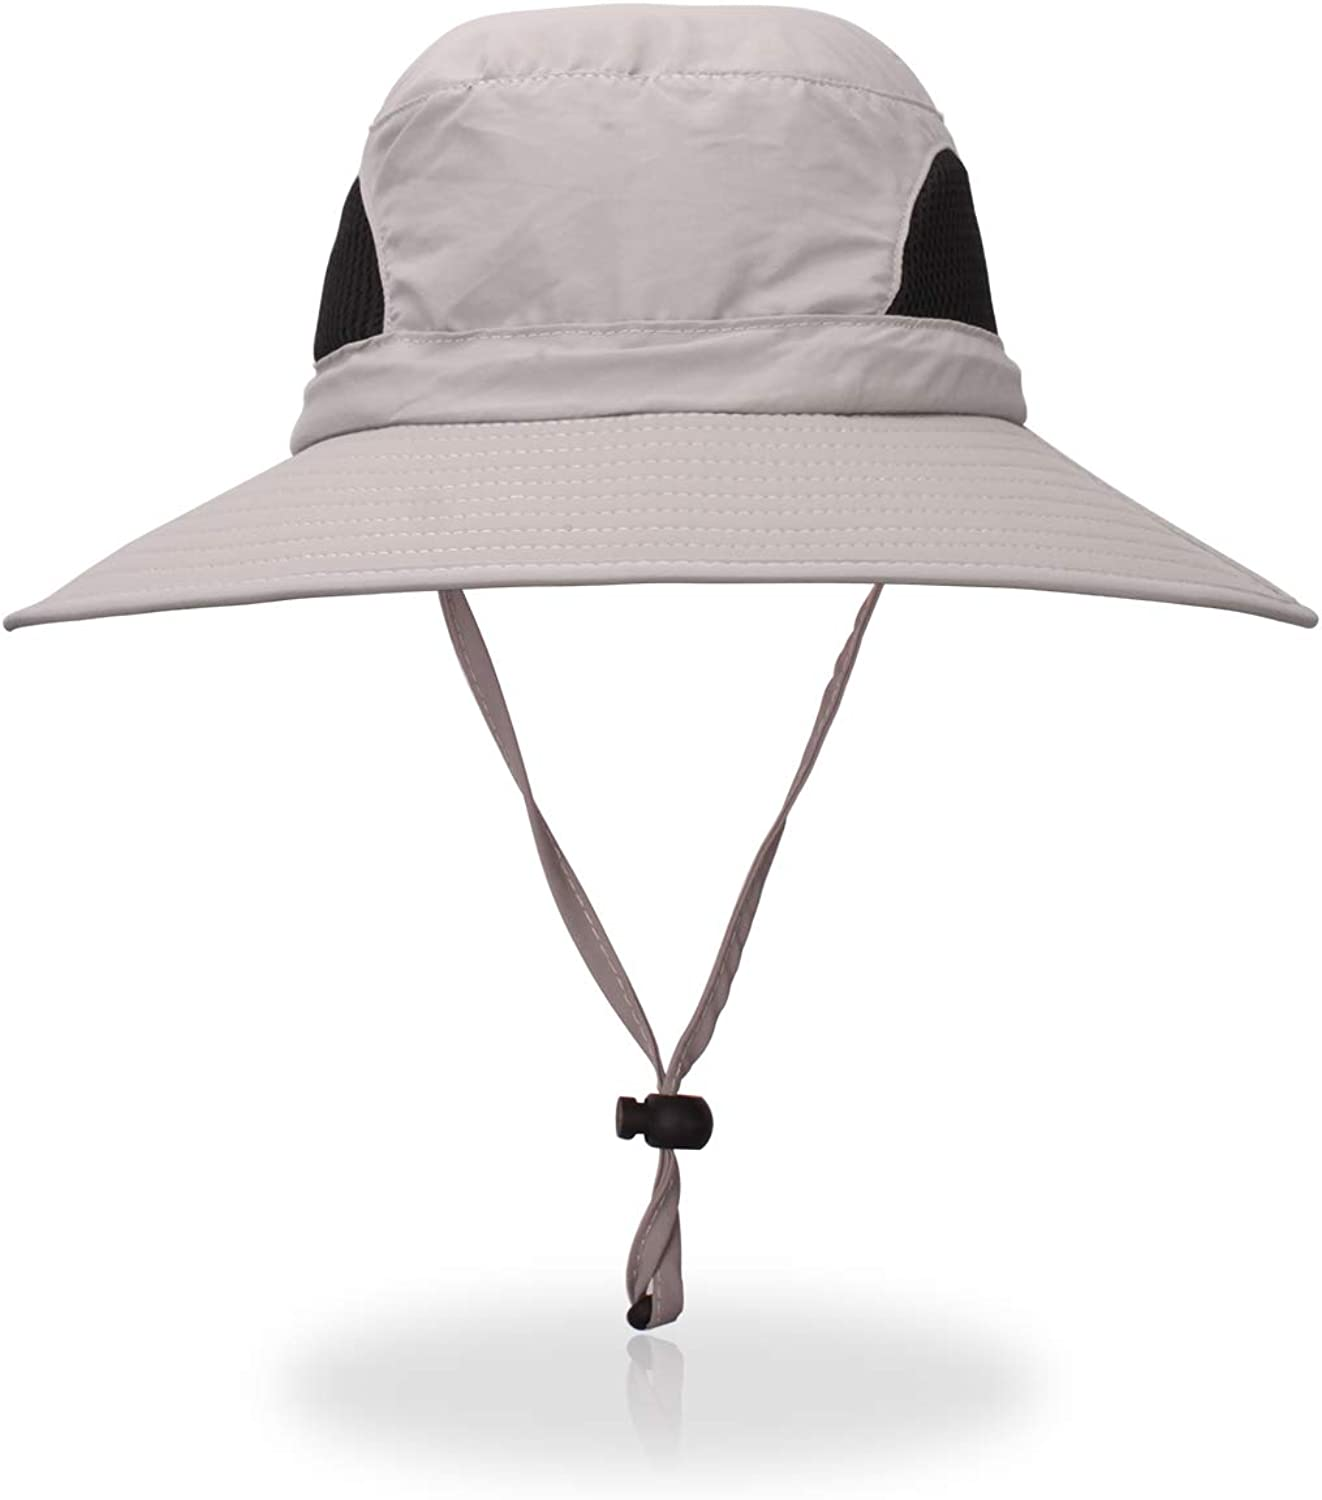 Belababy Outdoor Sun Hat QuickDry Breathable Mesh Hat Camping Cap